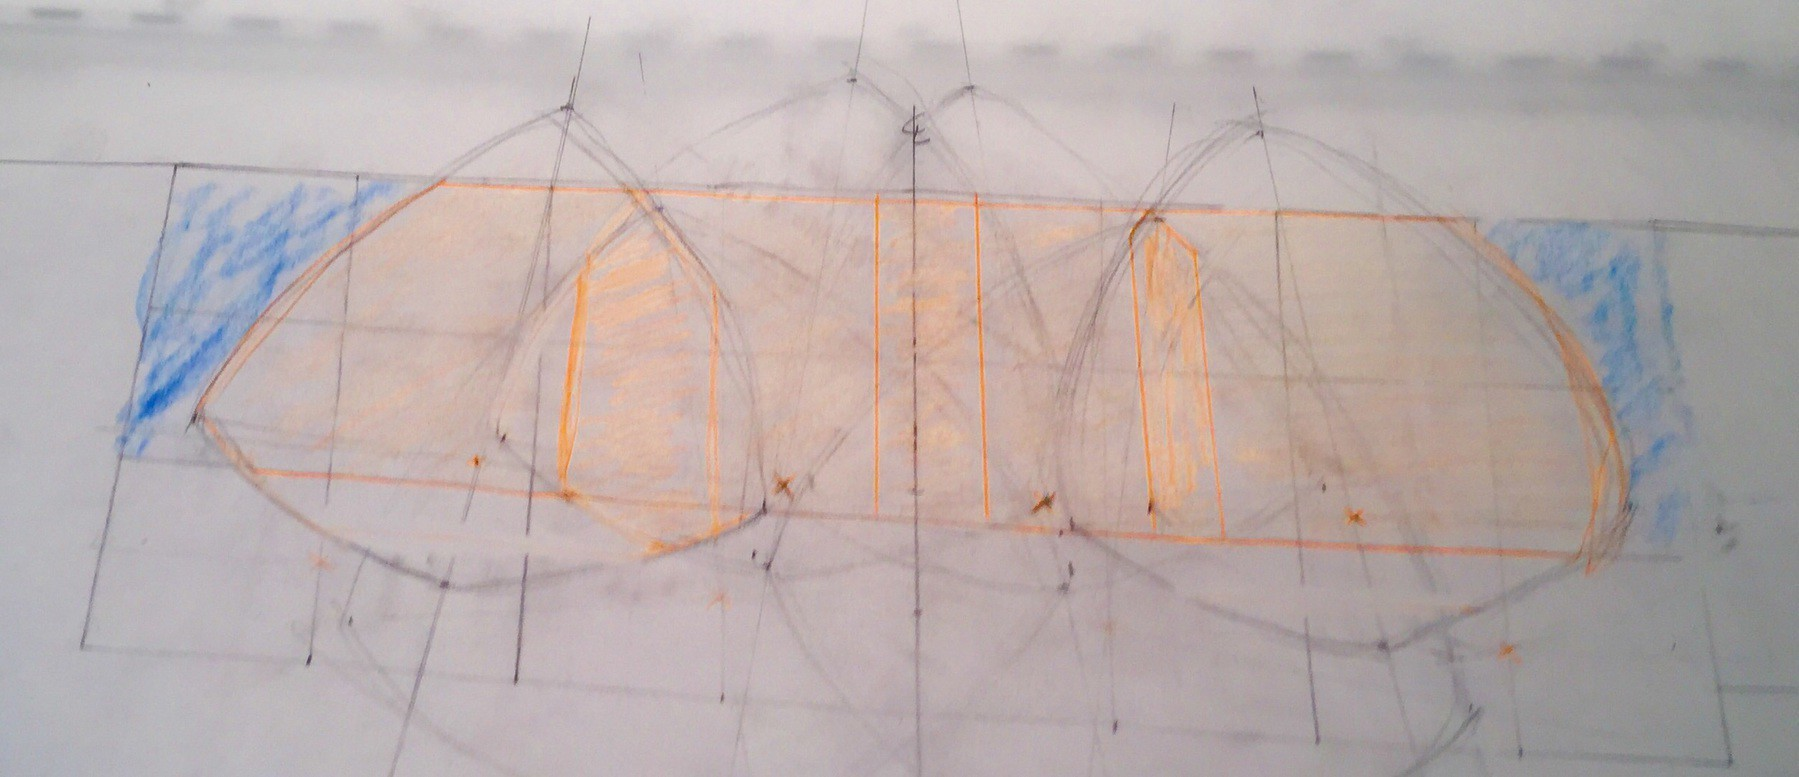 Lighting Plan Worksheet on Tracing Paper